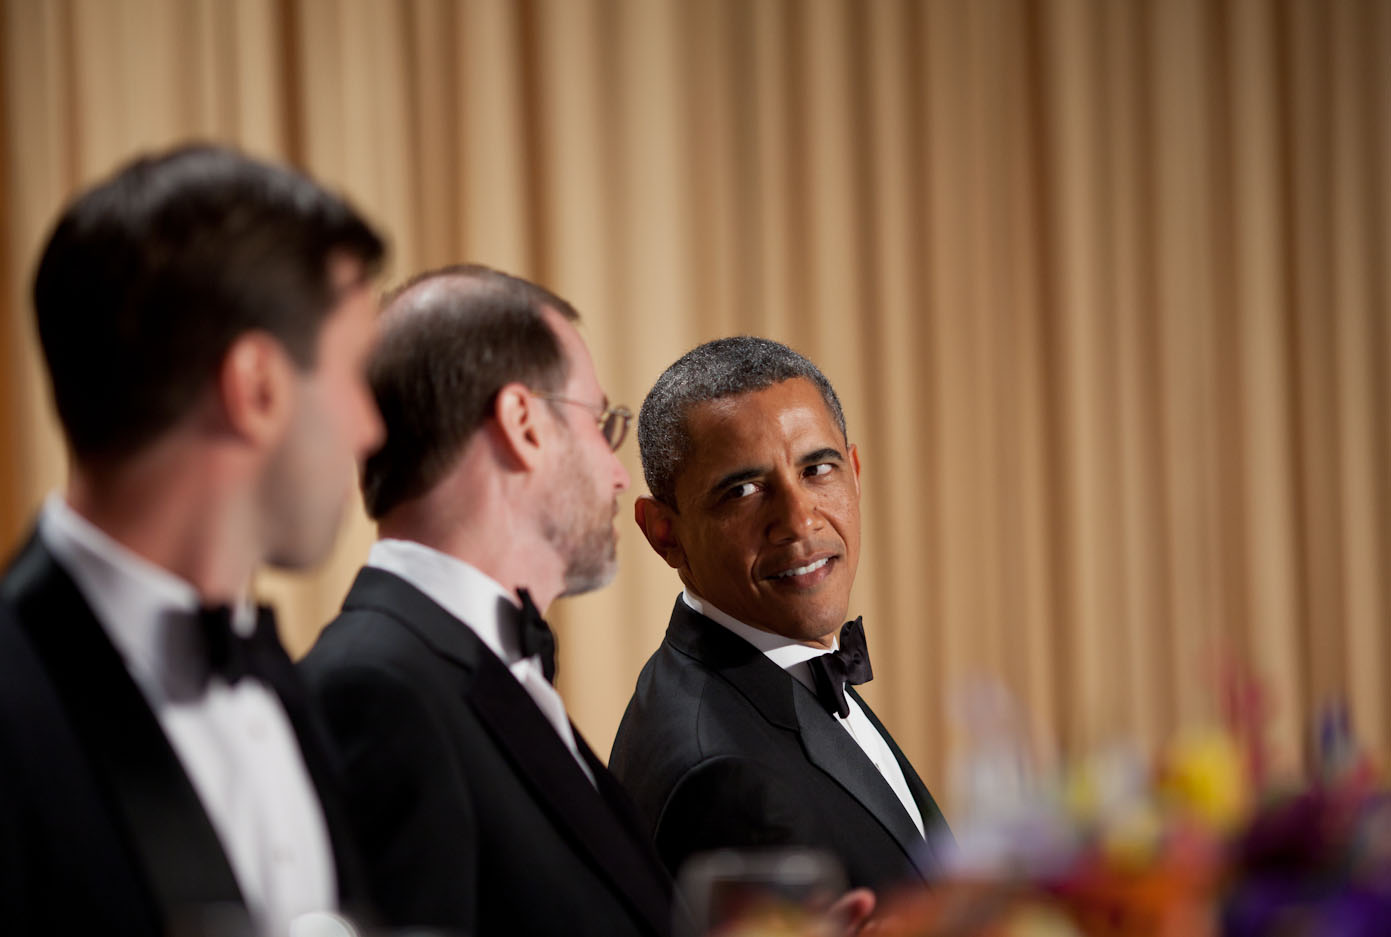 President Barack Obama attends the White House Correspondents' Association Dinner at the Washington Hilton Hotel in Washington, D.C., April 28, 2012. (Official White House Photo by Lawrence Jackson)